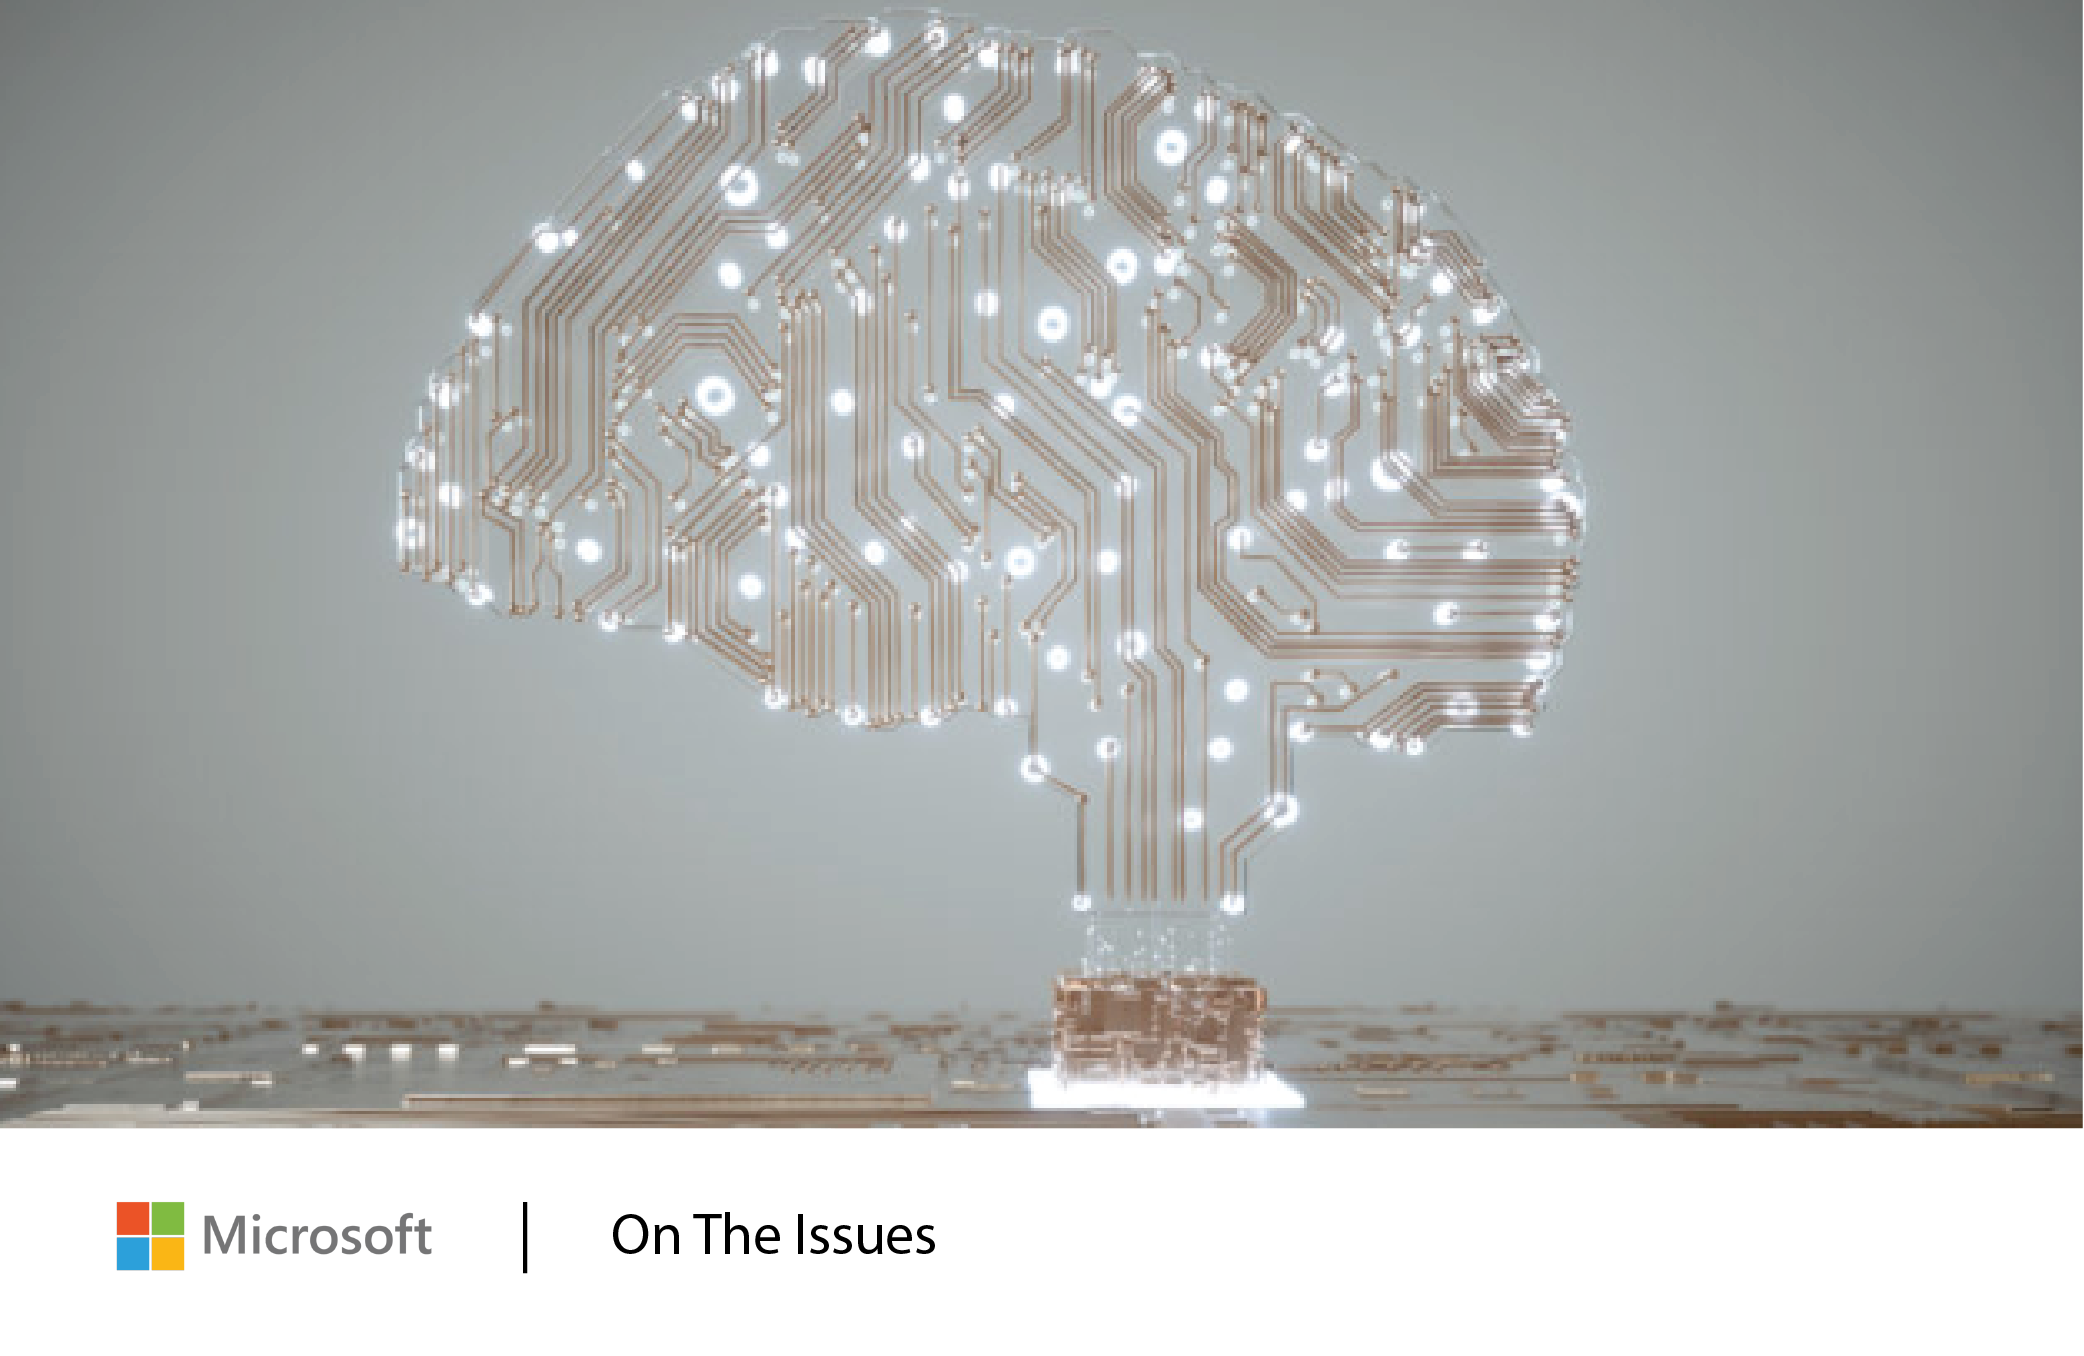 Microsoft on the Issues - Visit Microsoft on The Issues for a front-row seat to see how Microsoft is thinking about the future of sustainability, accessibility, cybersecurity and more.